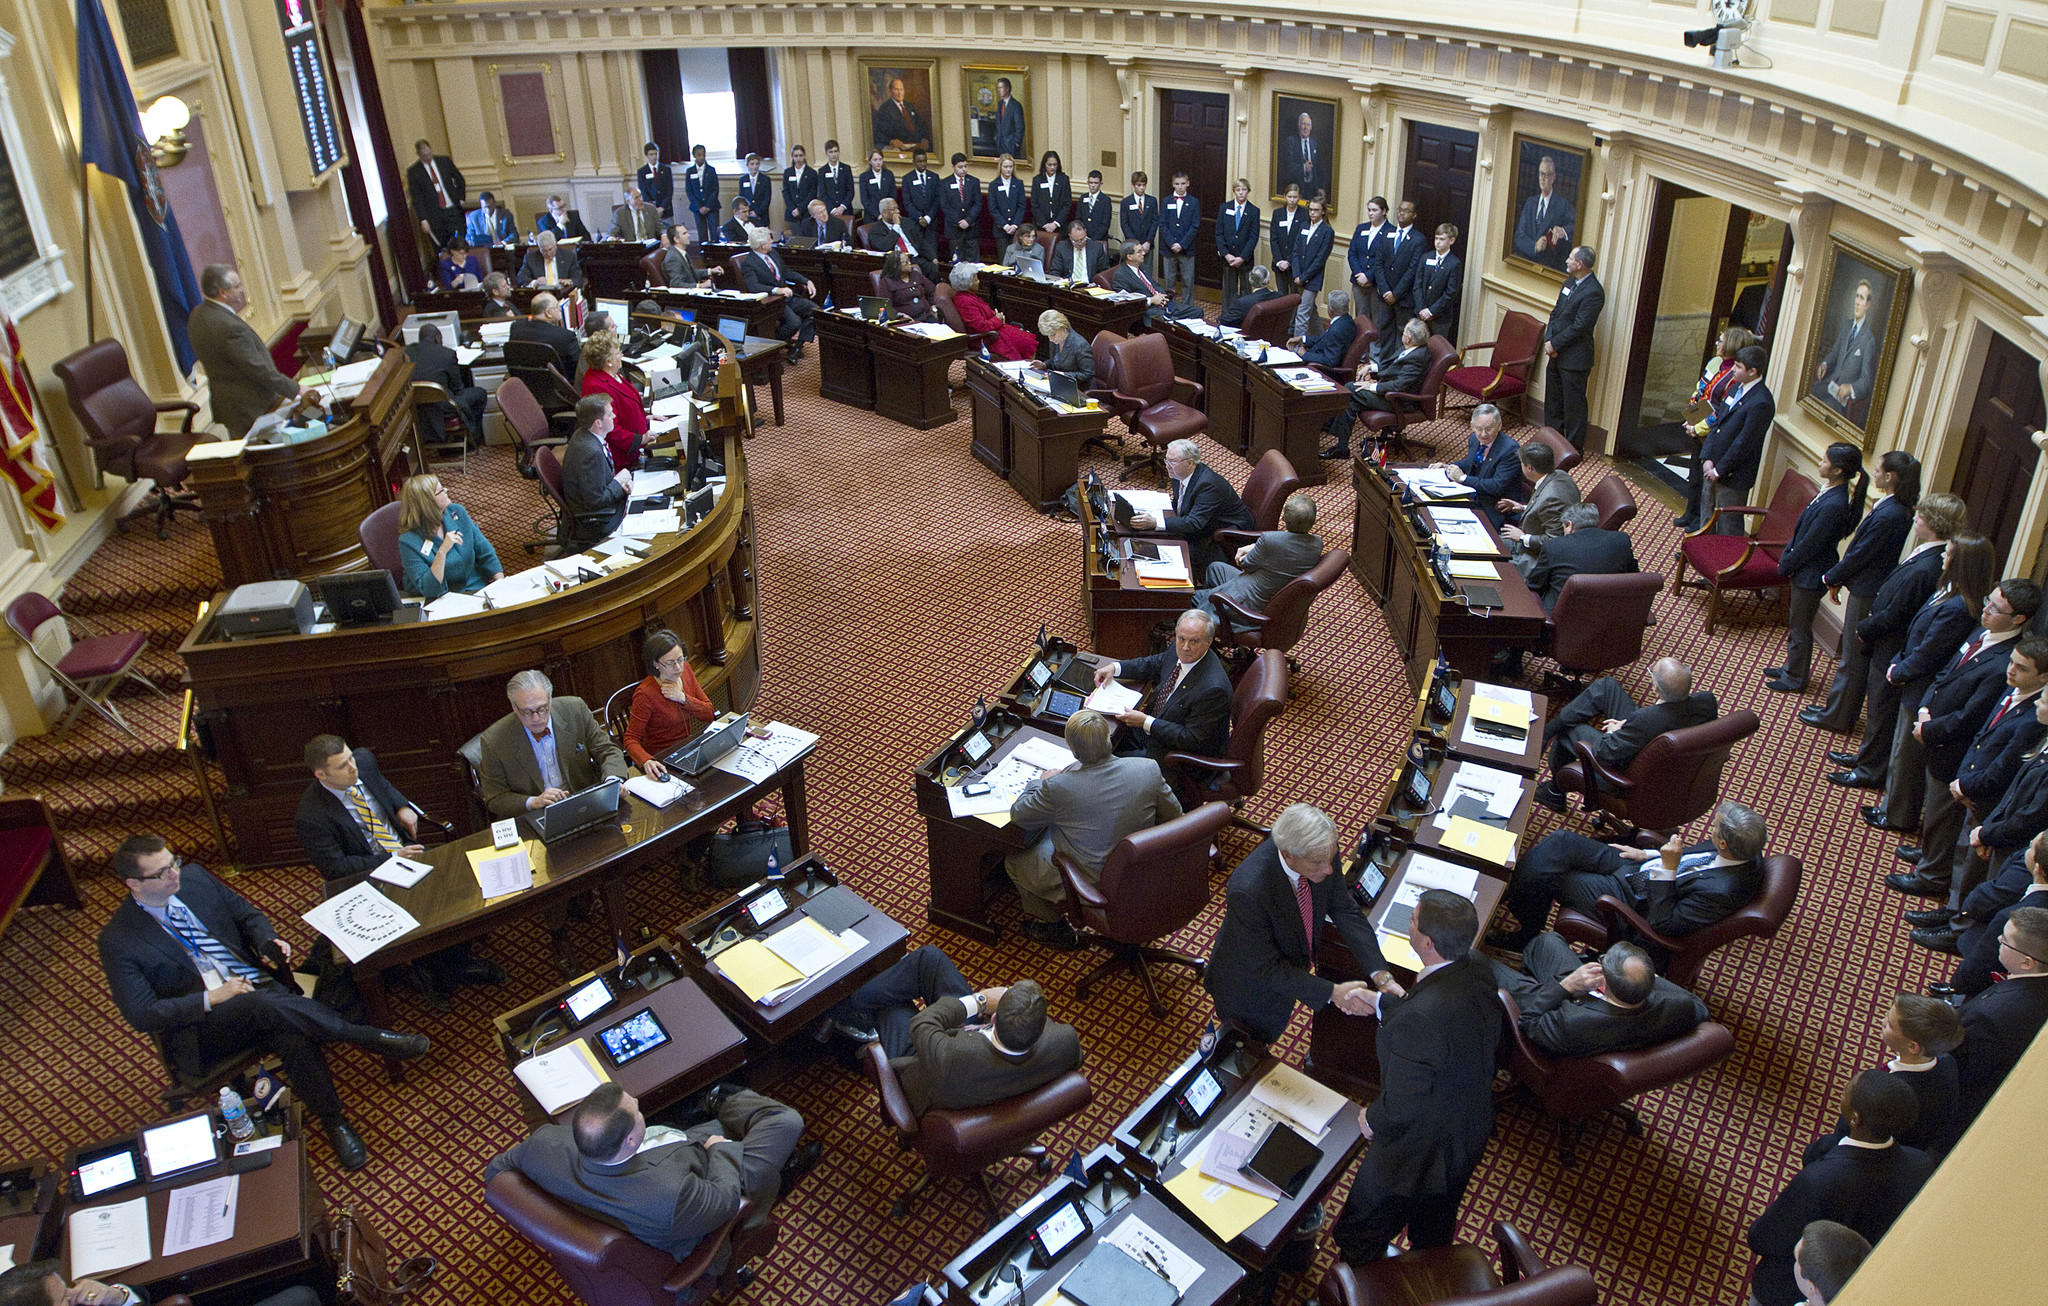 A view of the Senate floor on opening day of the 2014 session of the Virginia Assembly.